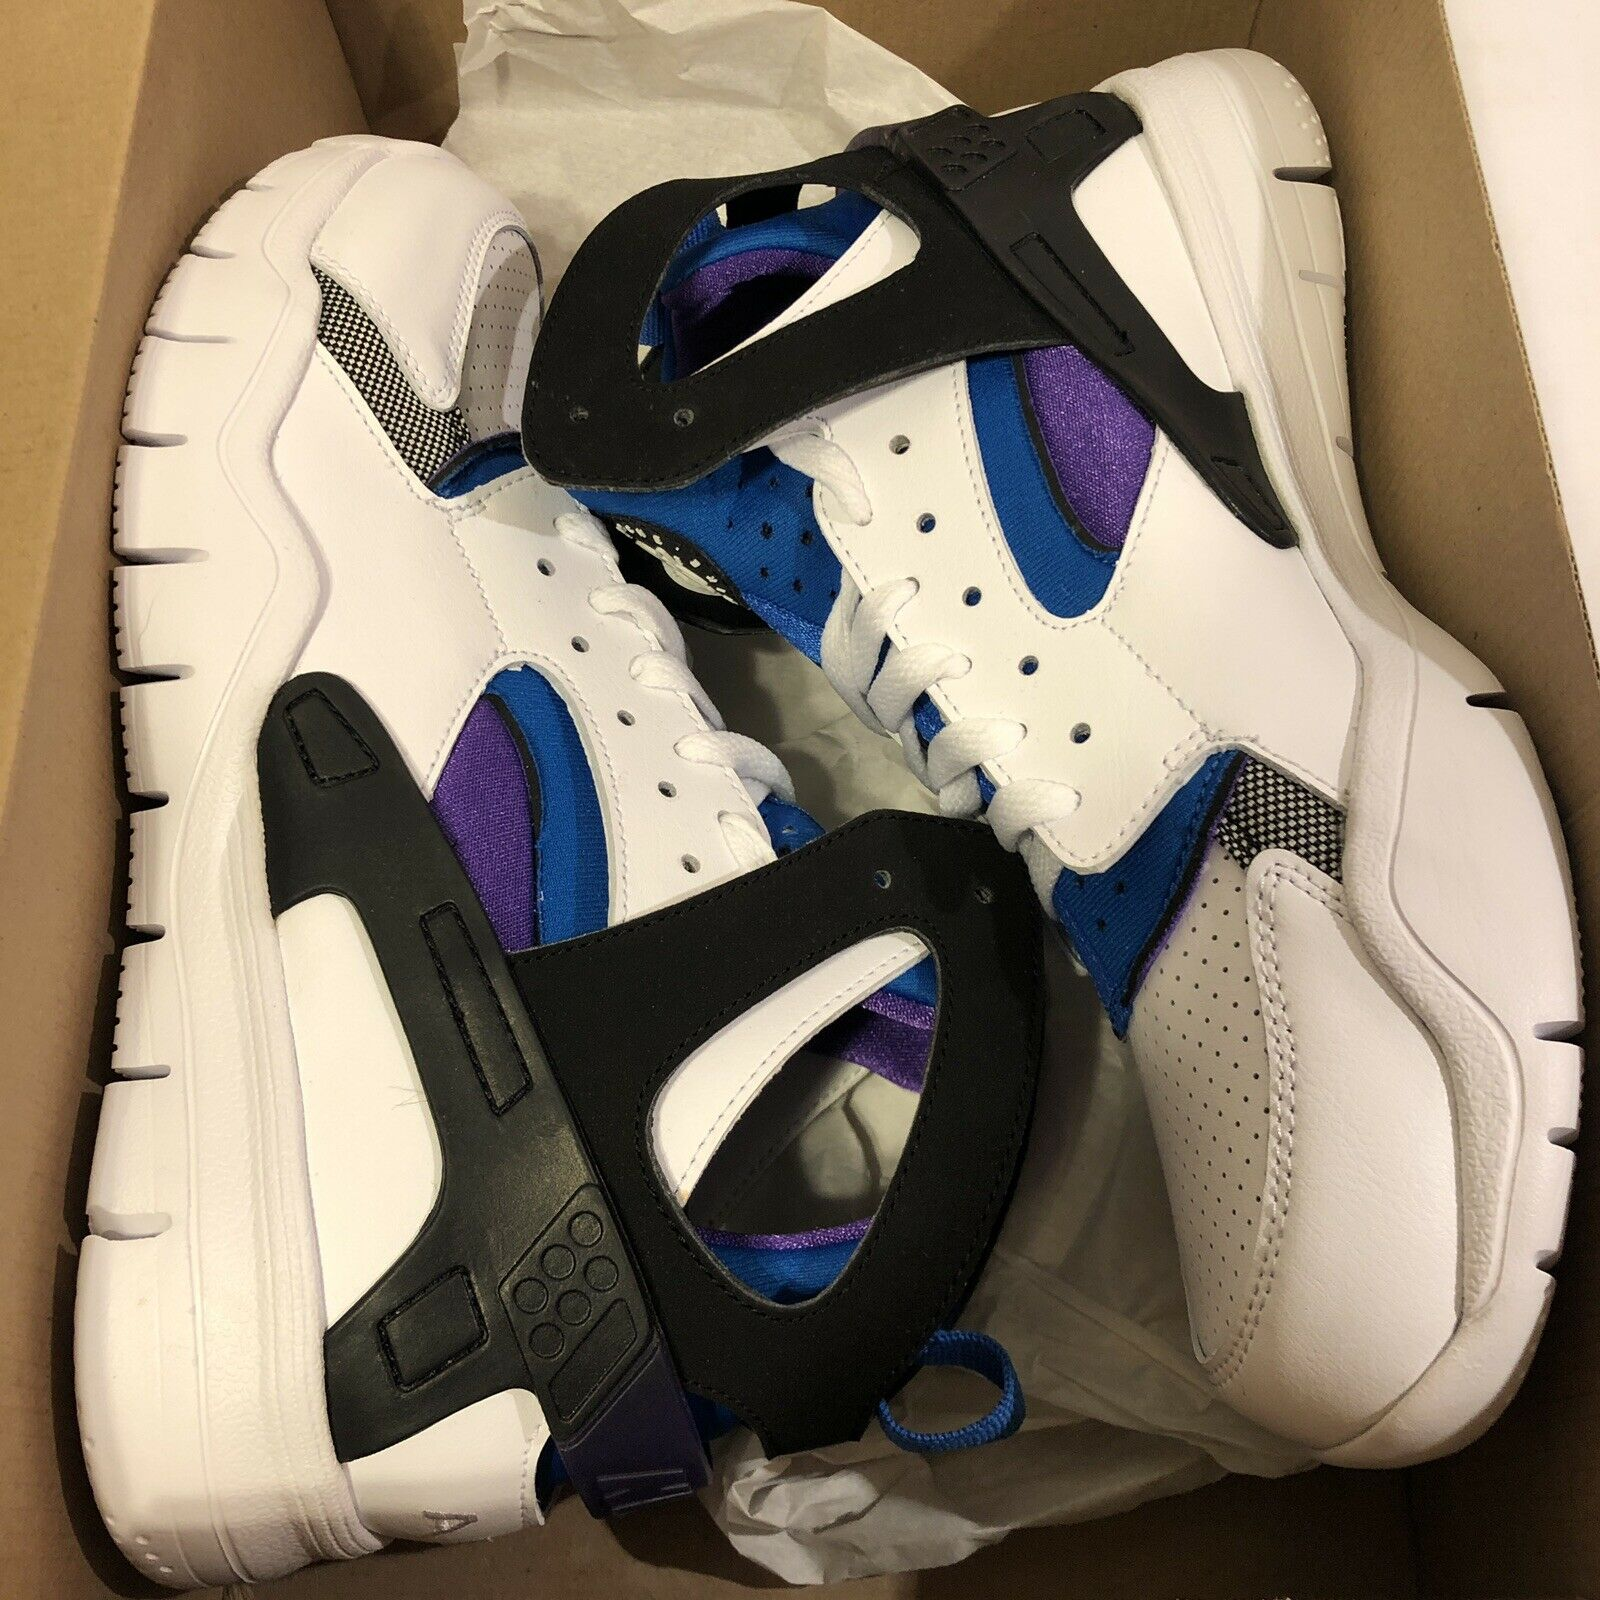 NEW DS Nike Air Huarache Bball 2012 Qs - NEW - Men's Size 10 Retro Fab Five 5